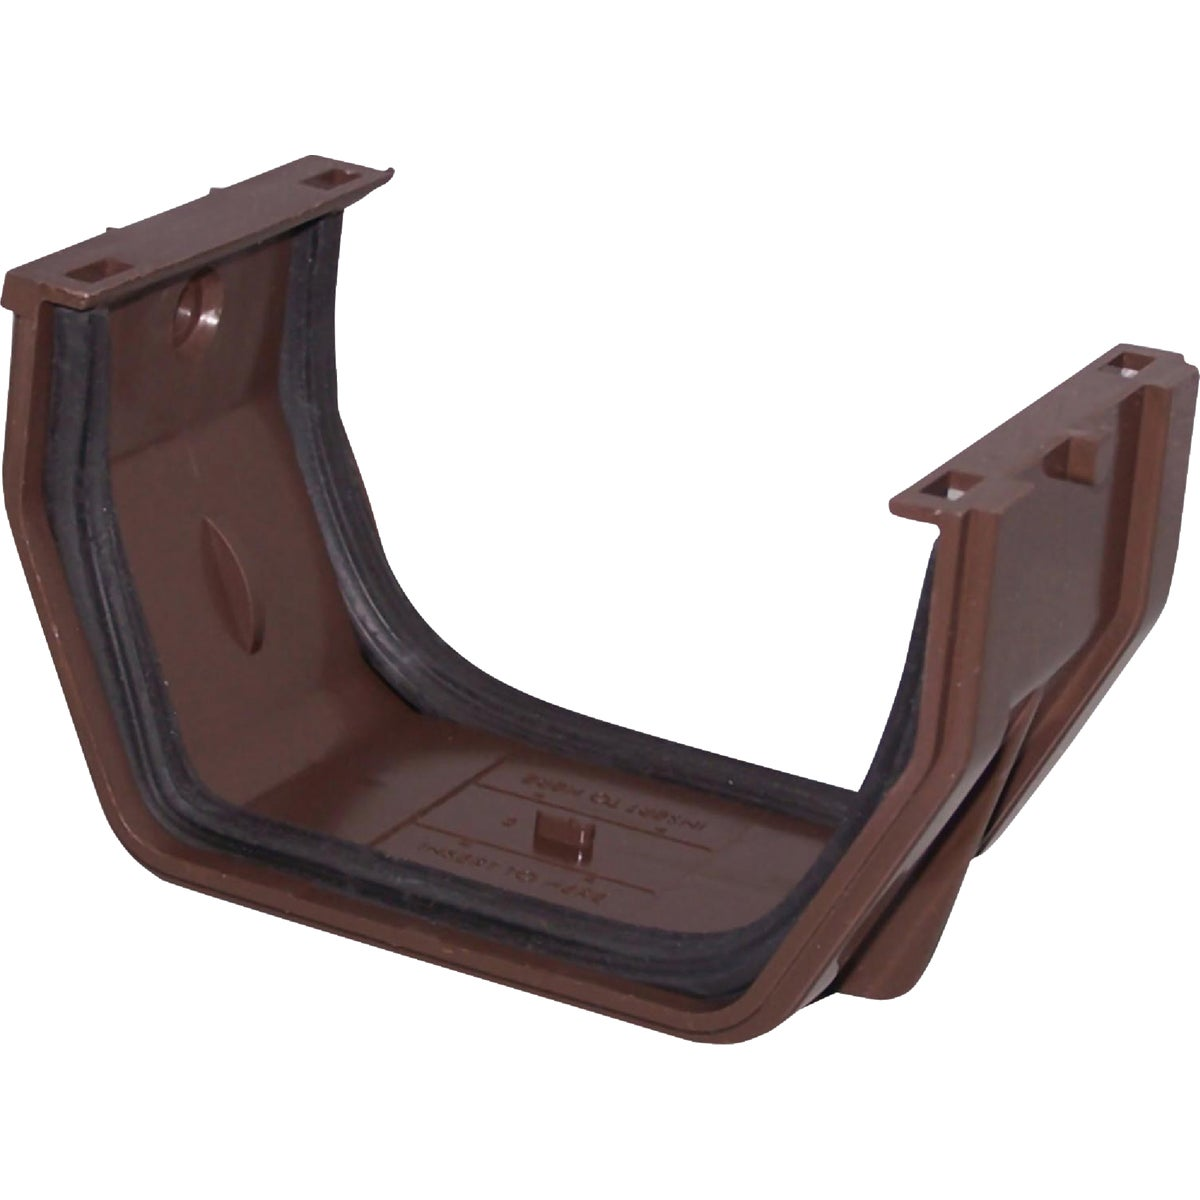 BRN SLIP JOINT GUTTER - RB105 by Genova Products